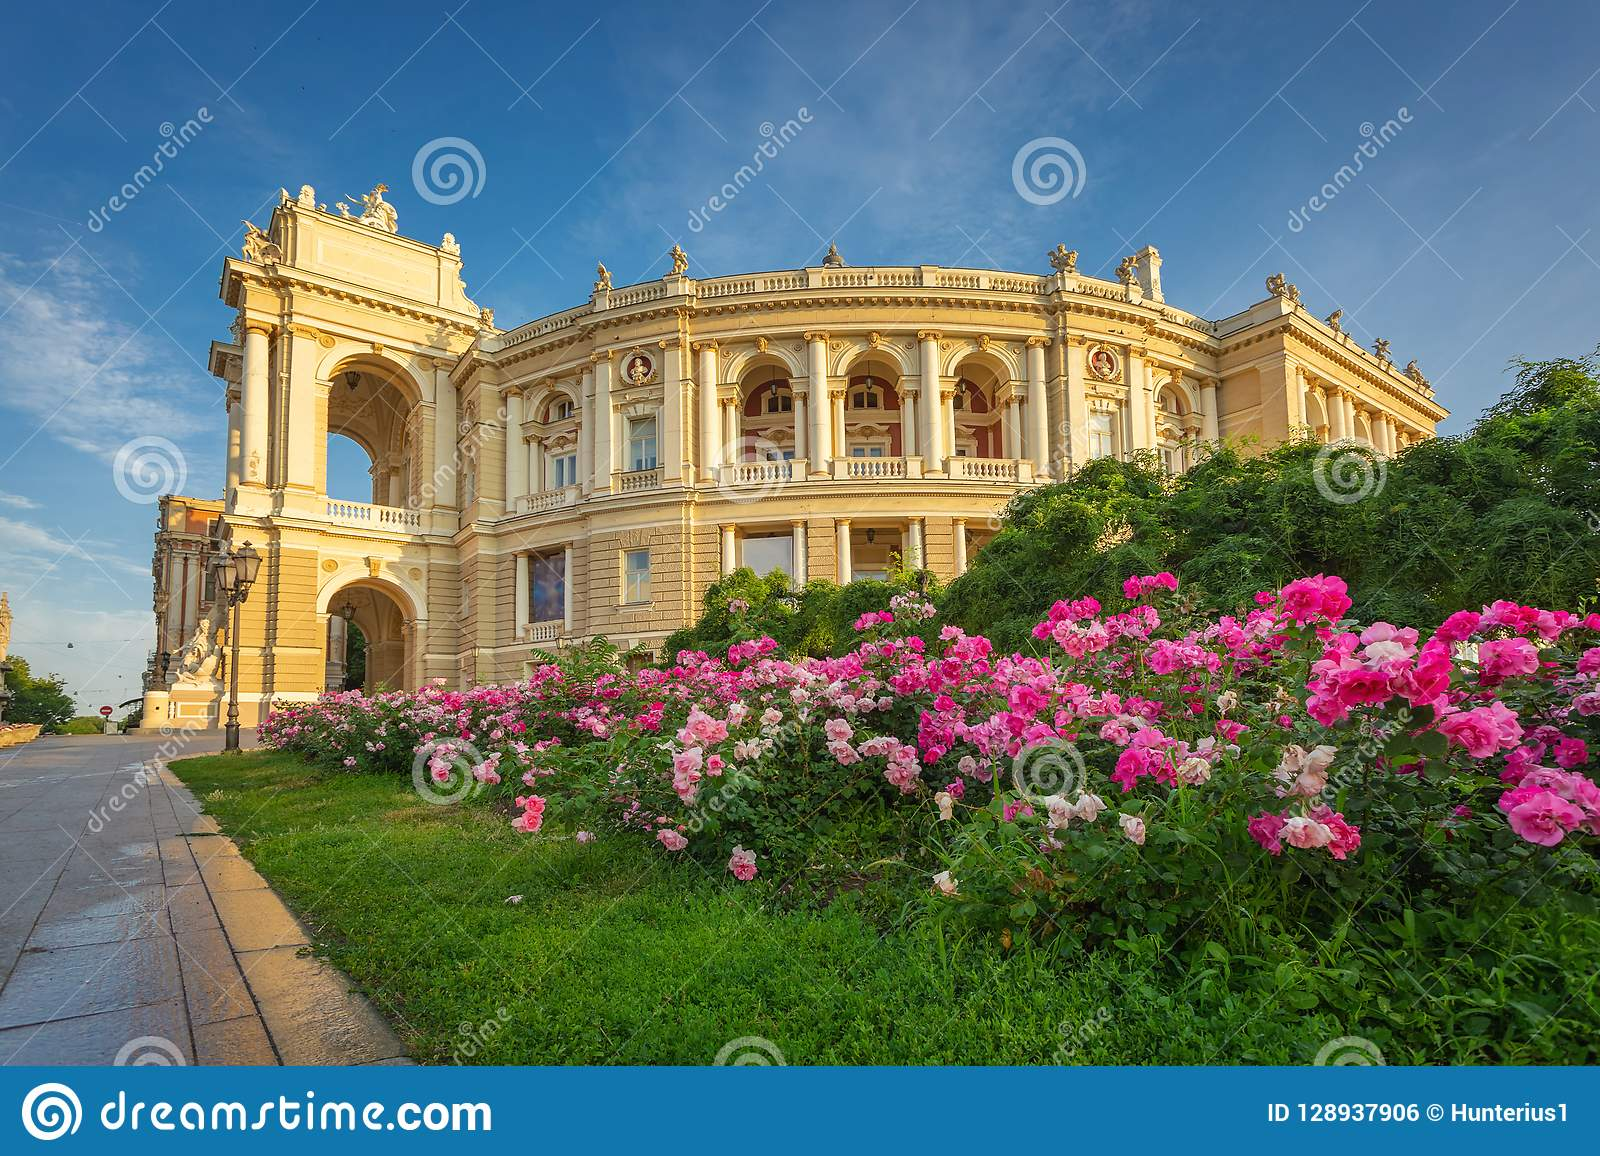 Odessa National Academic Theatre of Opera and Ballet vibrant exterior view in warm morning sun